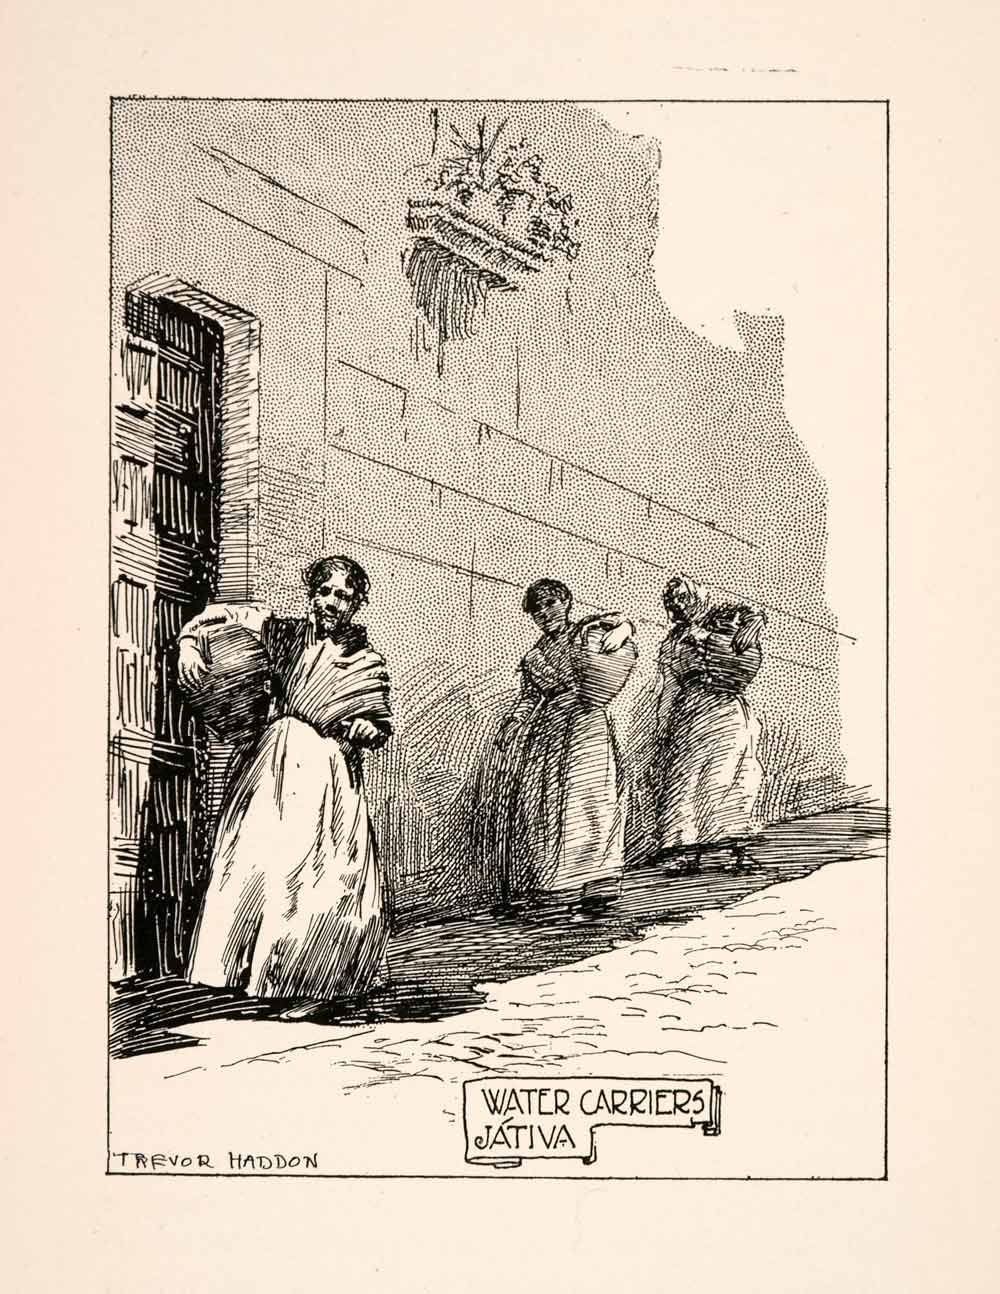 1905 Lithograph Jativa Xativa Spain Water Carrier Women Trevor Haddon XGKA4